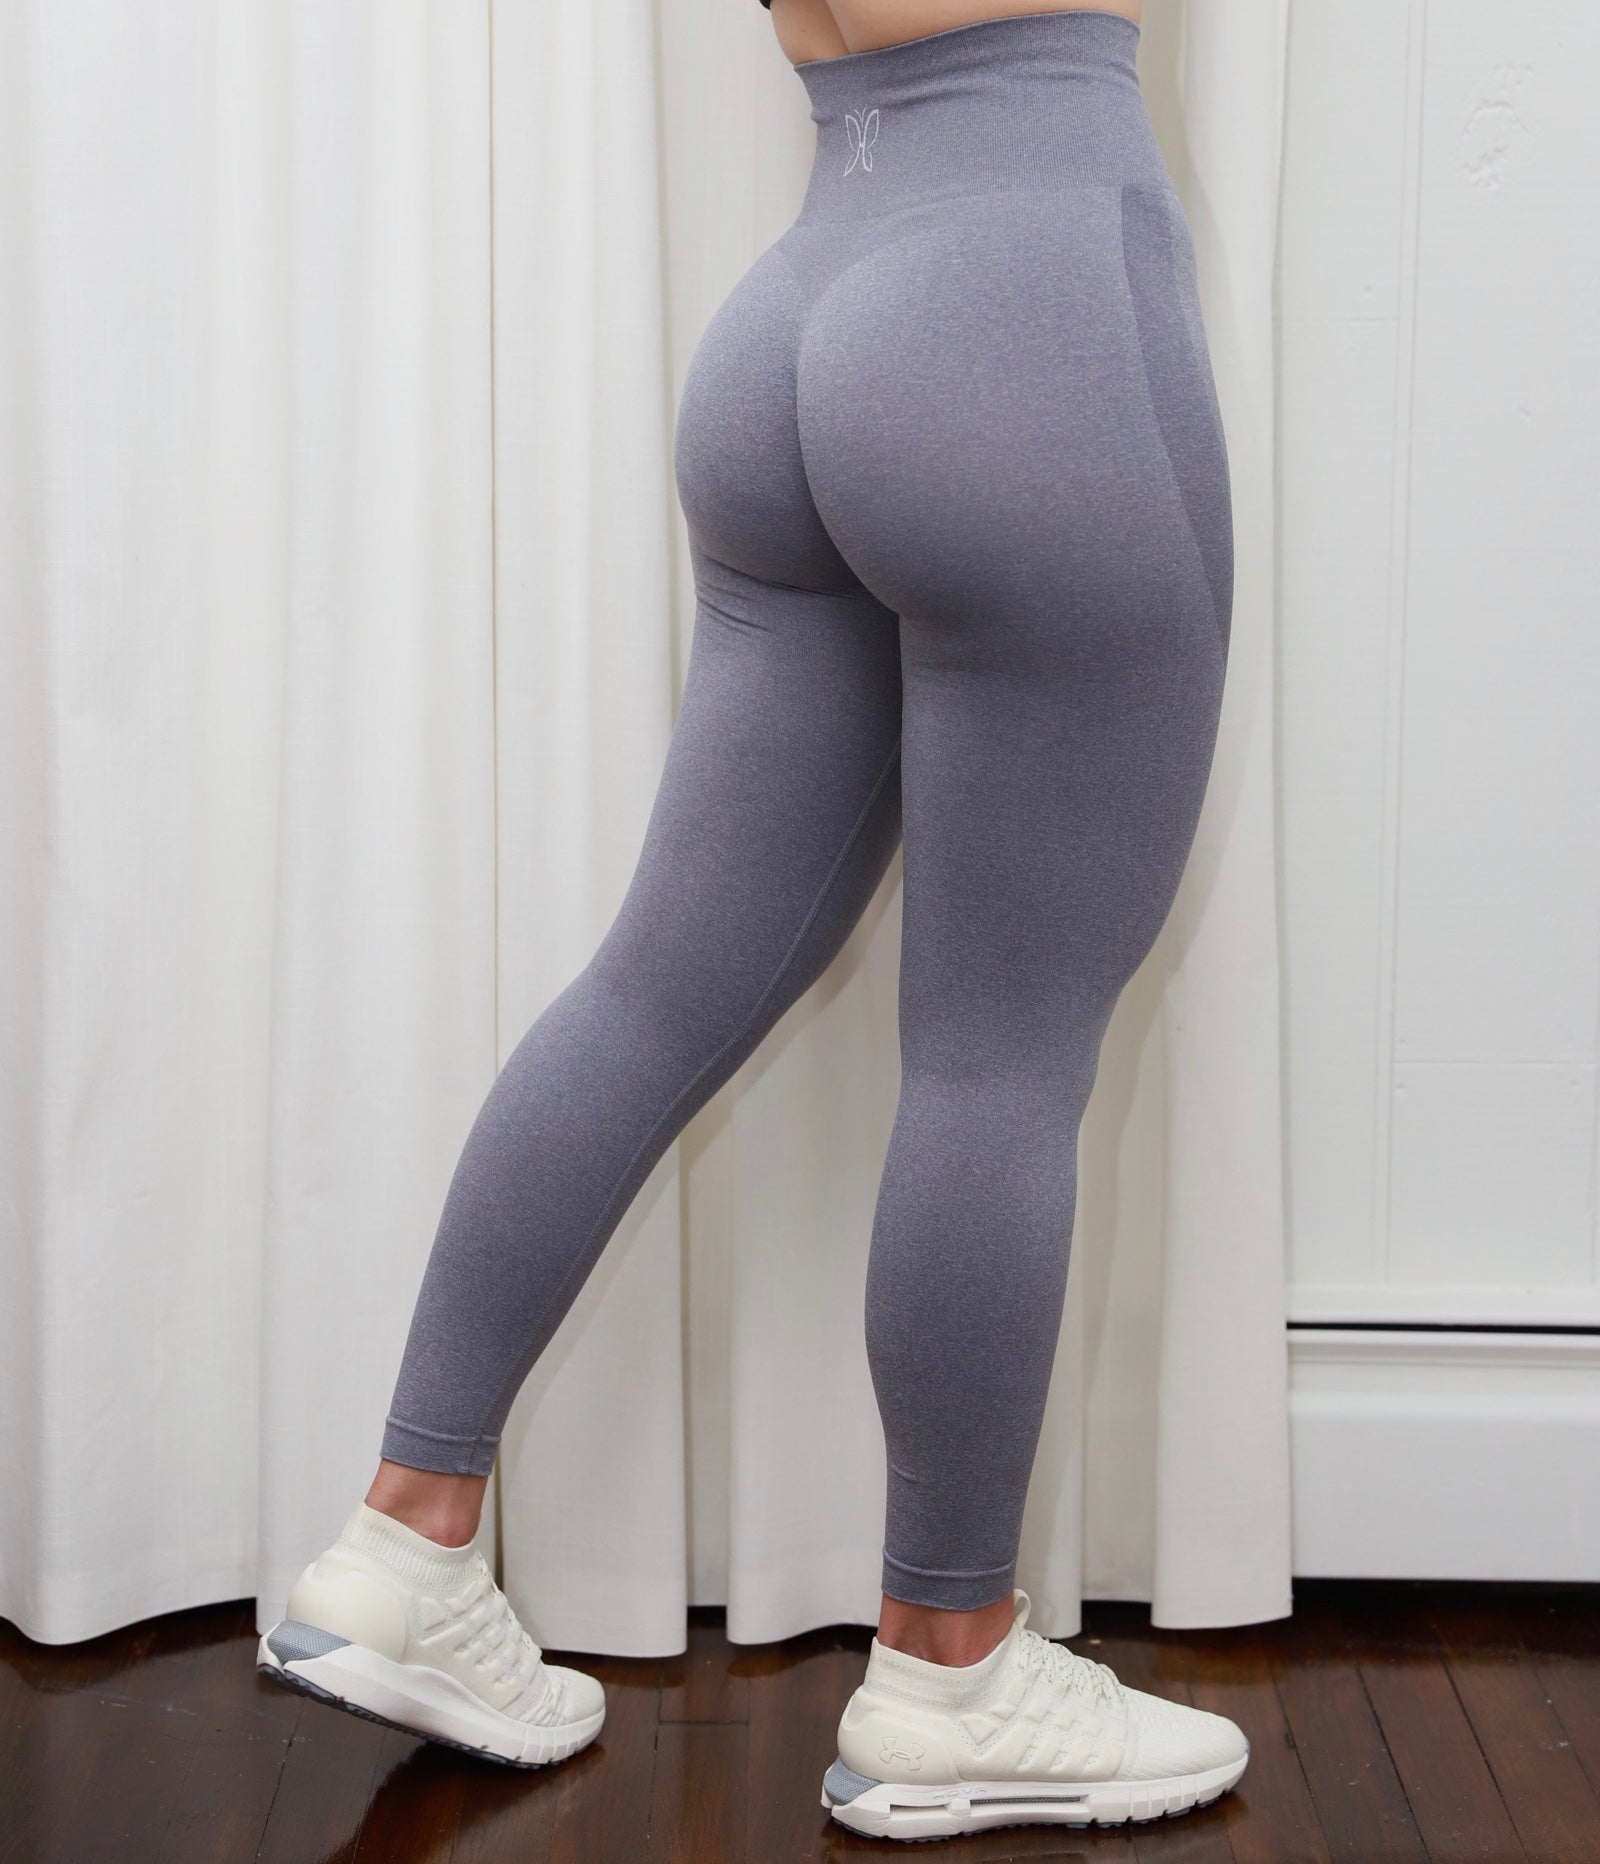 GREY SEAMLESS LEGGINGS